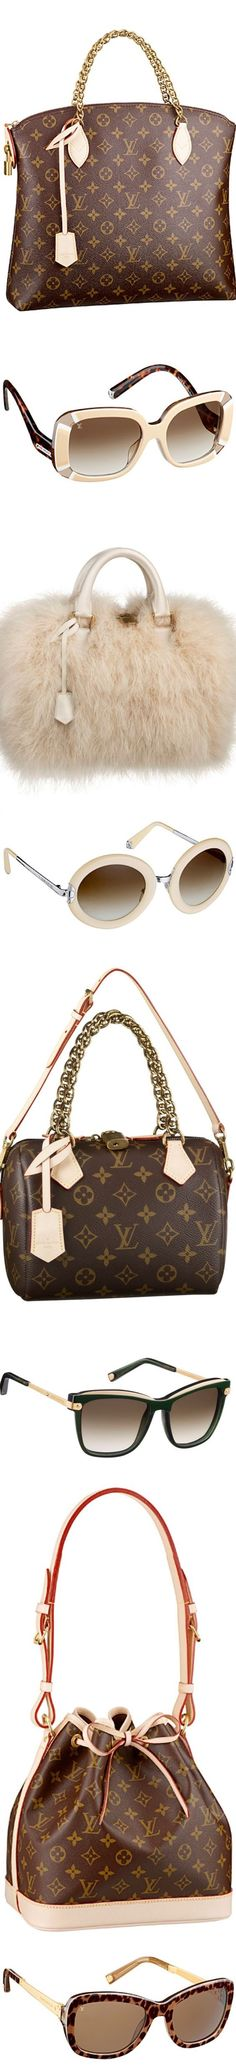 Louis Vuitton Handbags & more ..